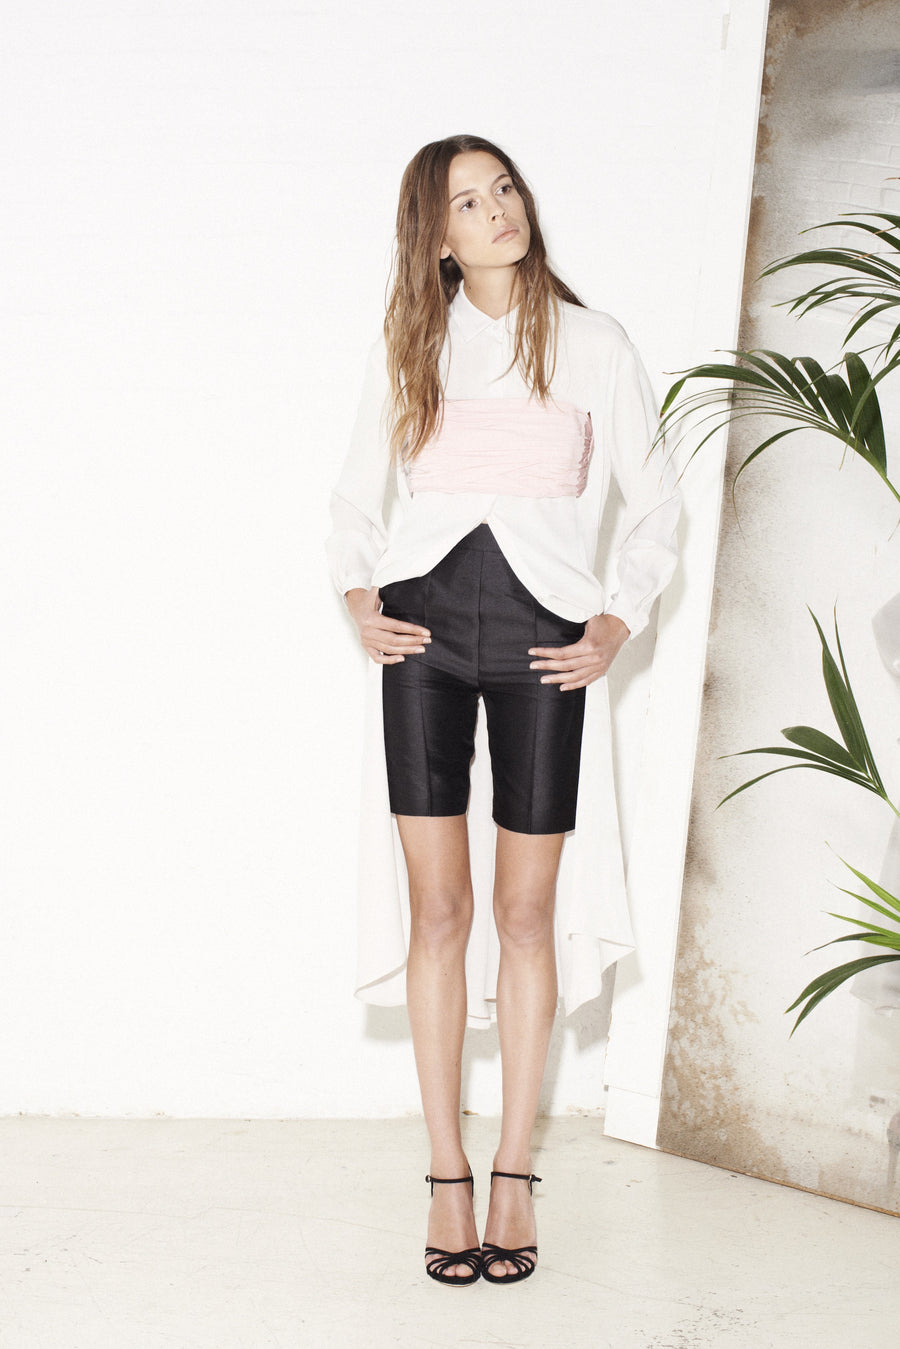 SS2013 / Look 10